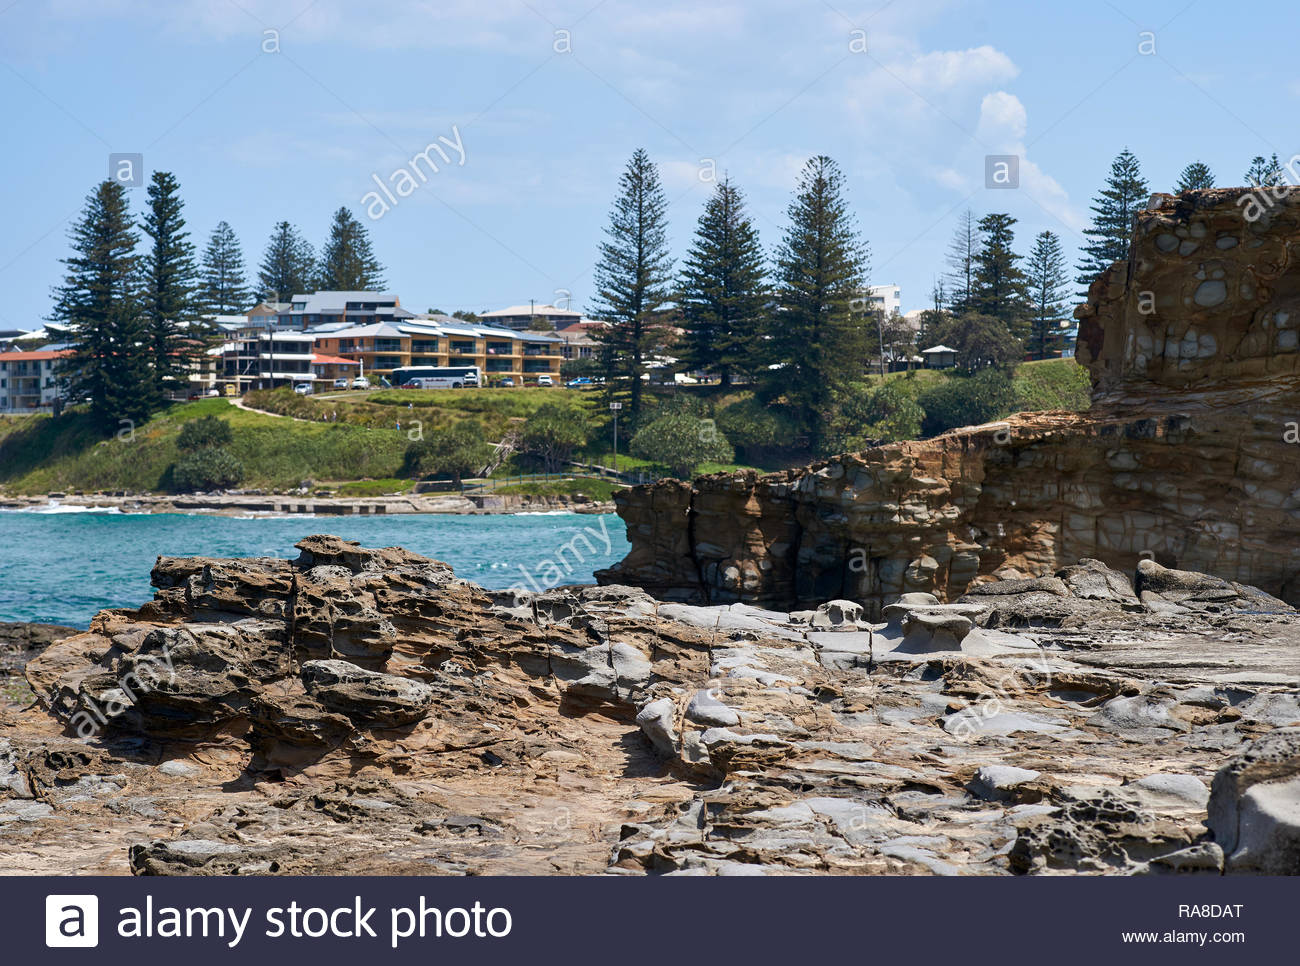 The wave-washed rocks of the coastal headland between Turners and Main beach; Yamba, NSW, Australia. Pacific Ocean eroding sandstone rock formation. - Stock Image